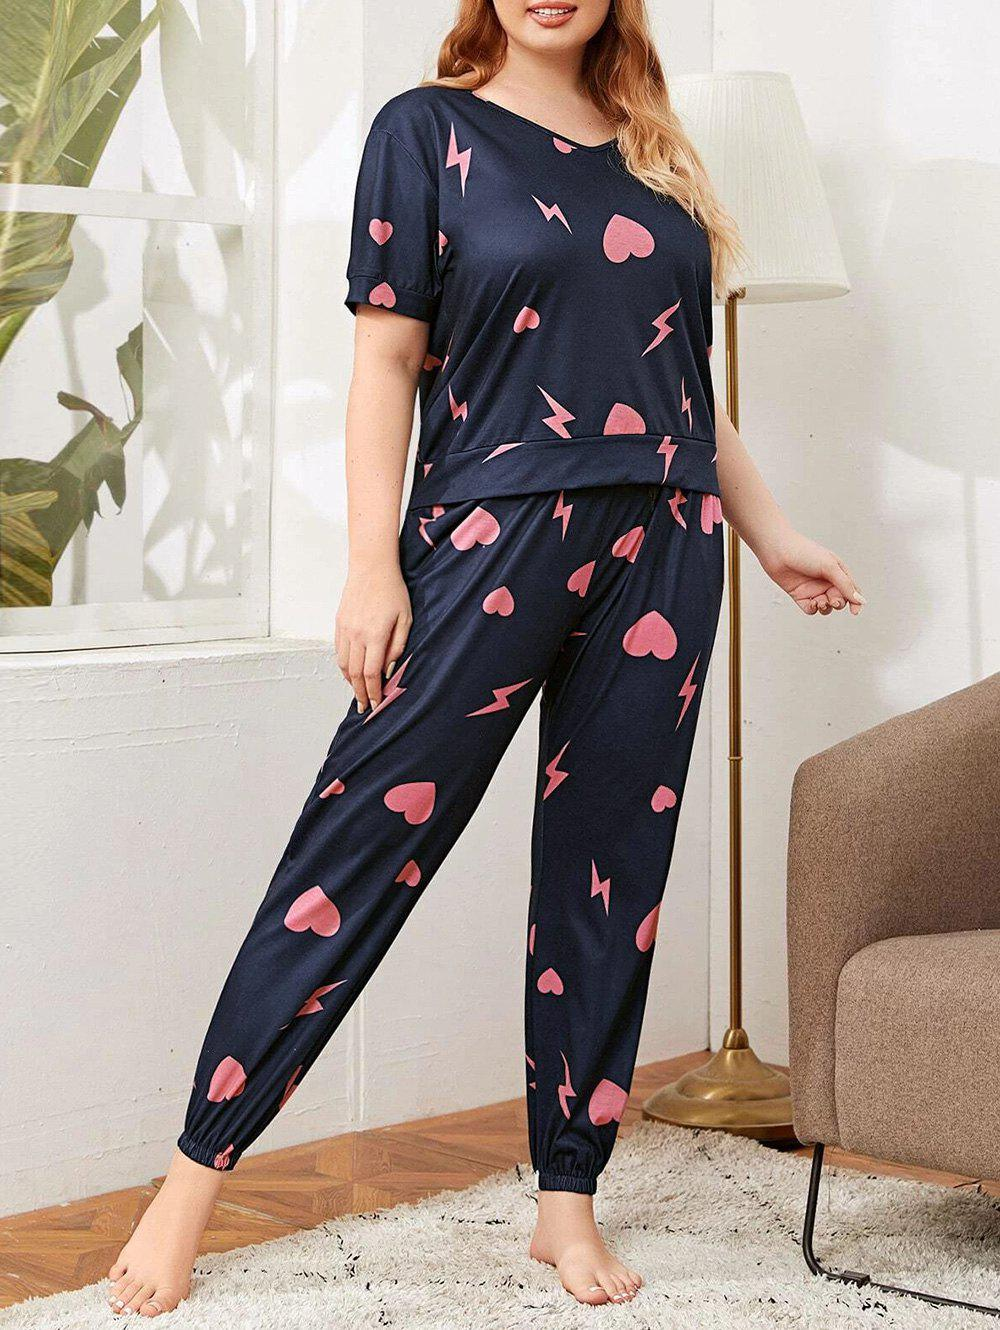 Chic Plus Size Heart Lighting Pattern Drawstring Pants Pajama Set